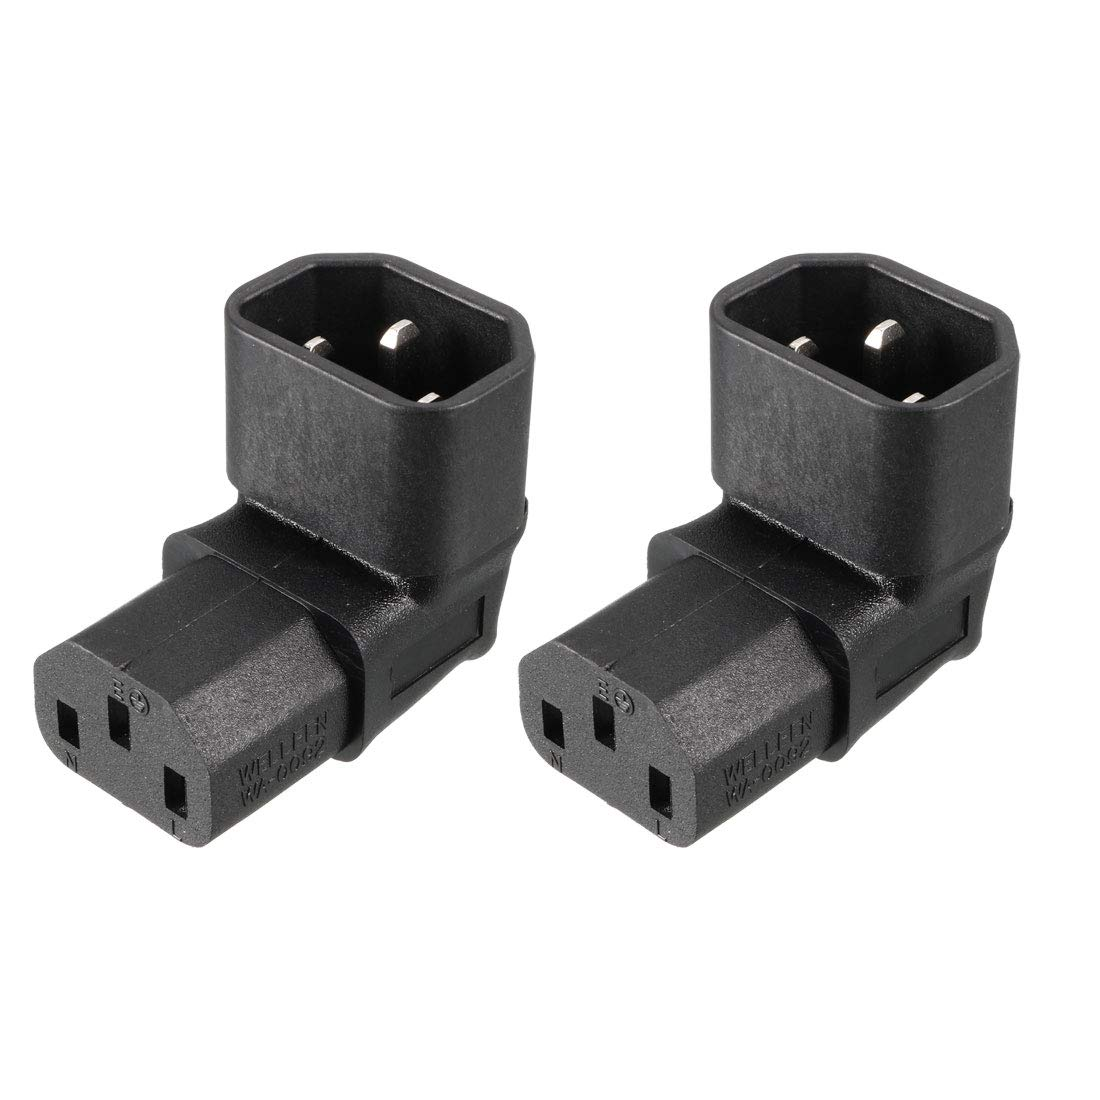 uxcell AC125V AC250V 10A IEC320 Male C14 to Female C7 Power Socket Adapter